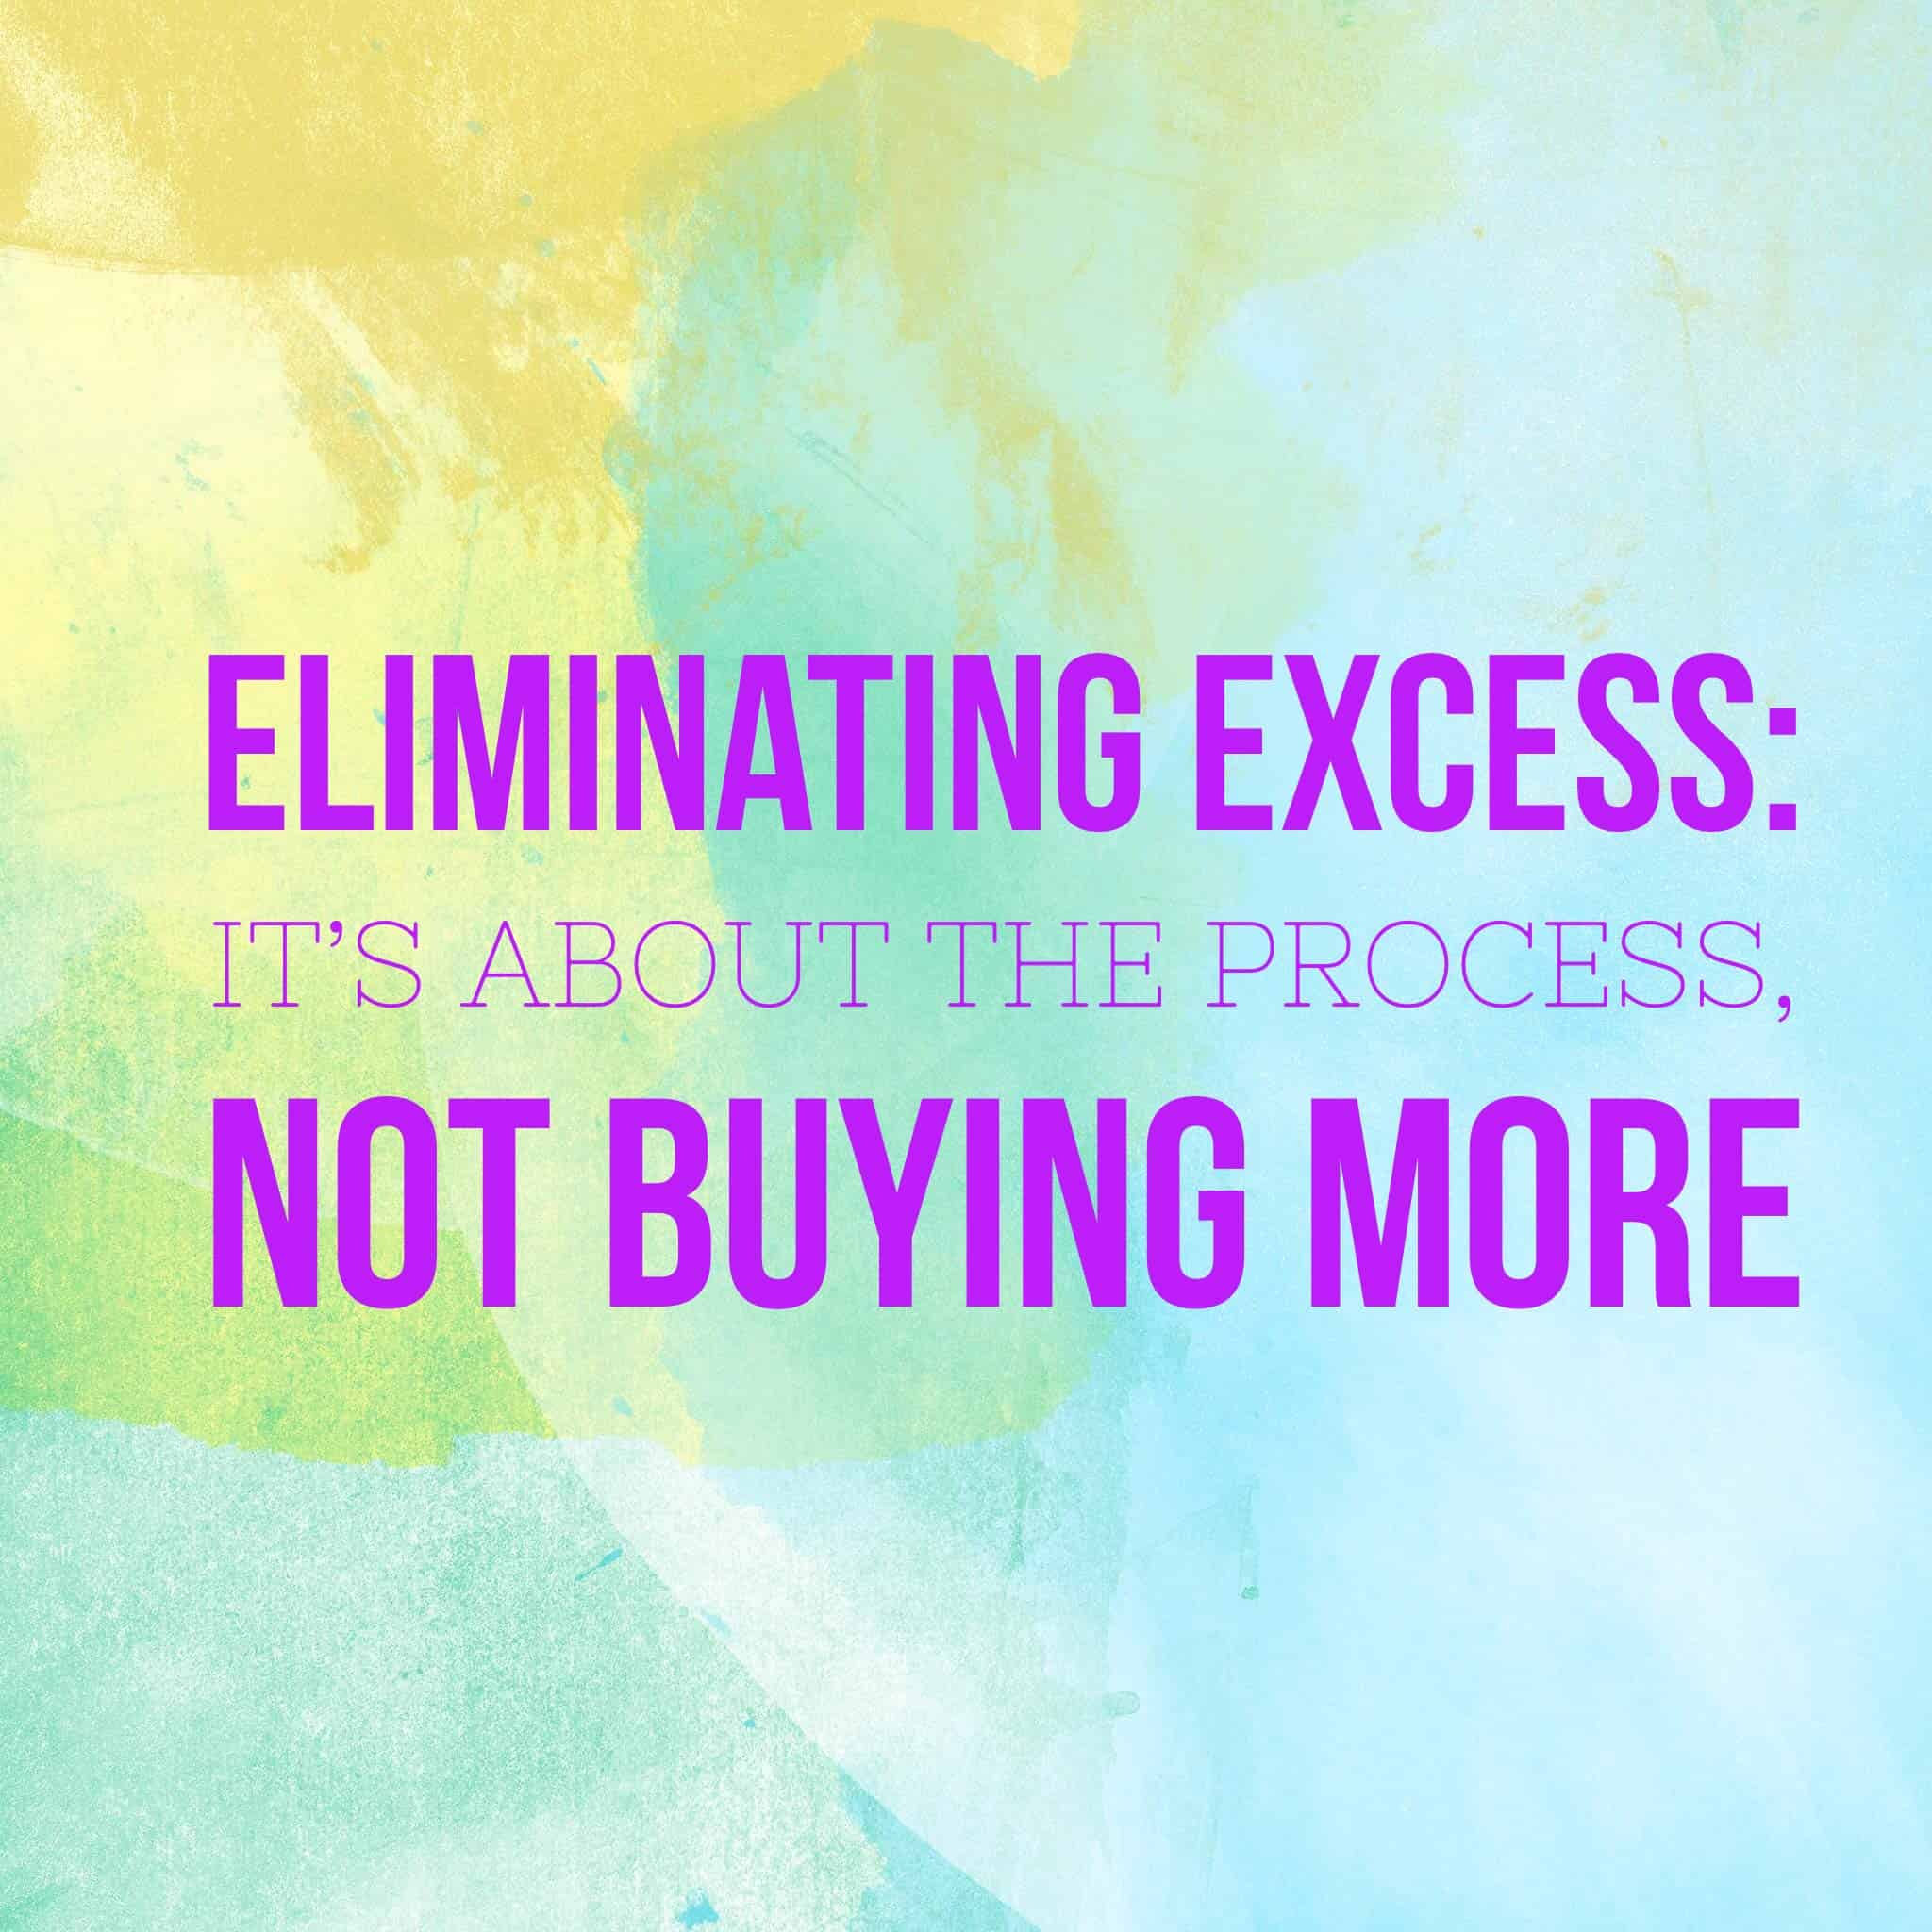 Eliminating Excess: It's About the Process, Not Buying More